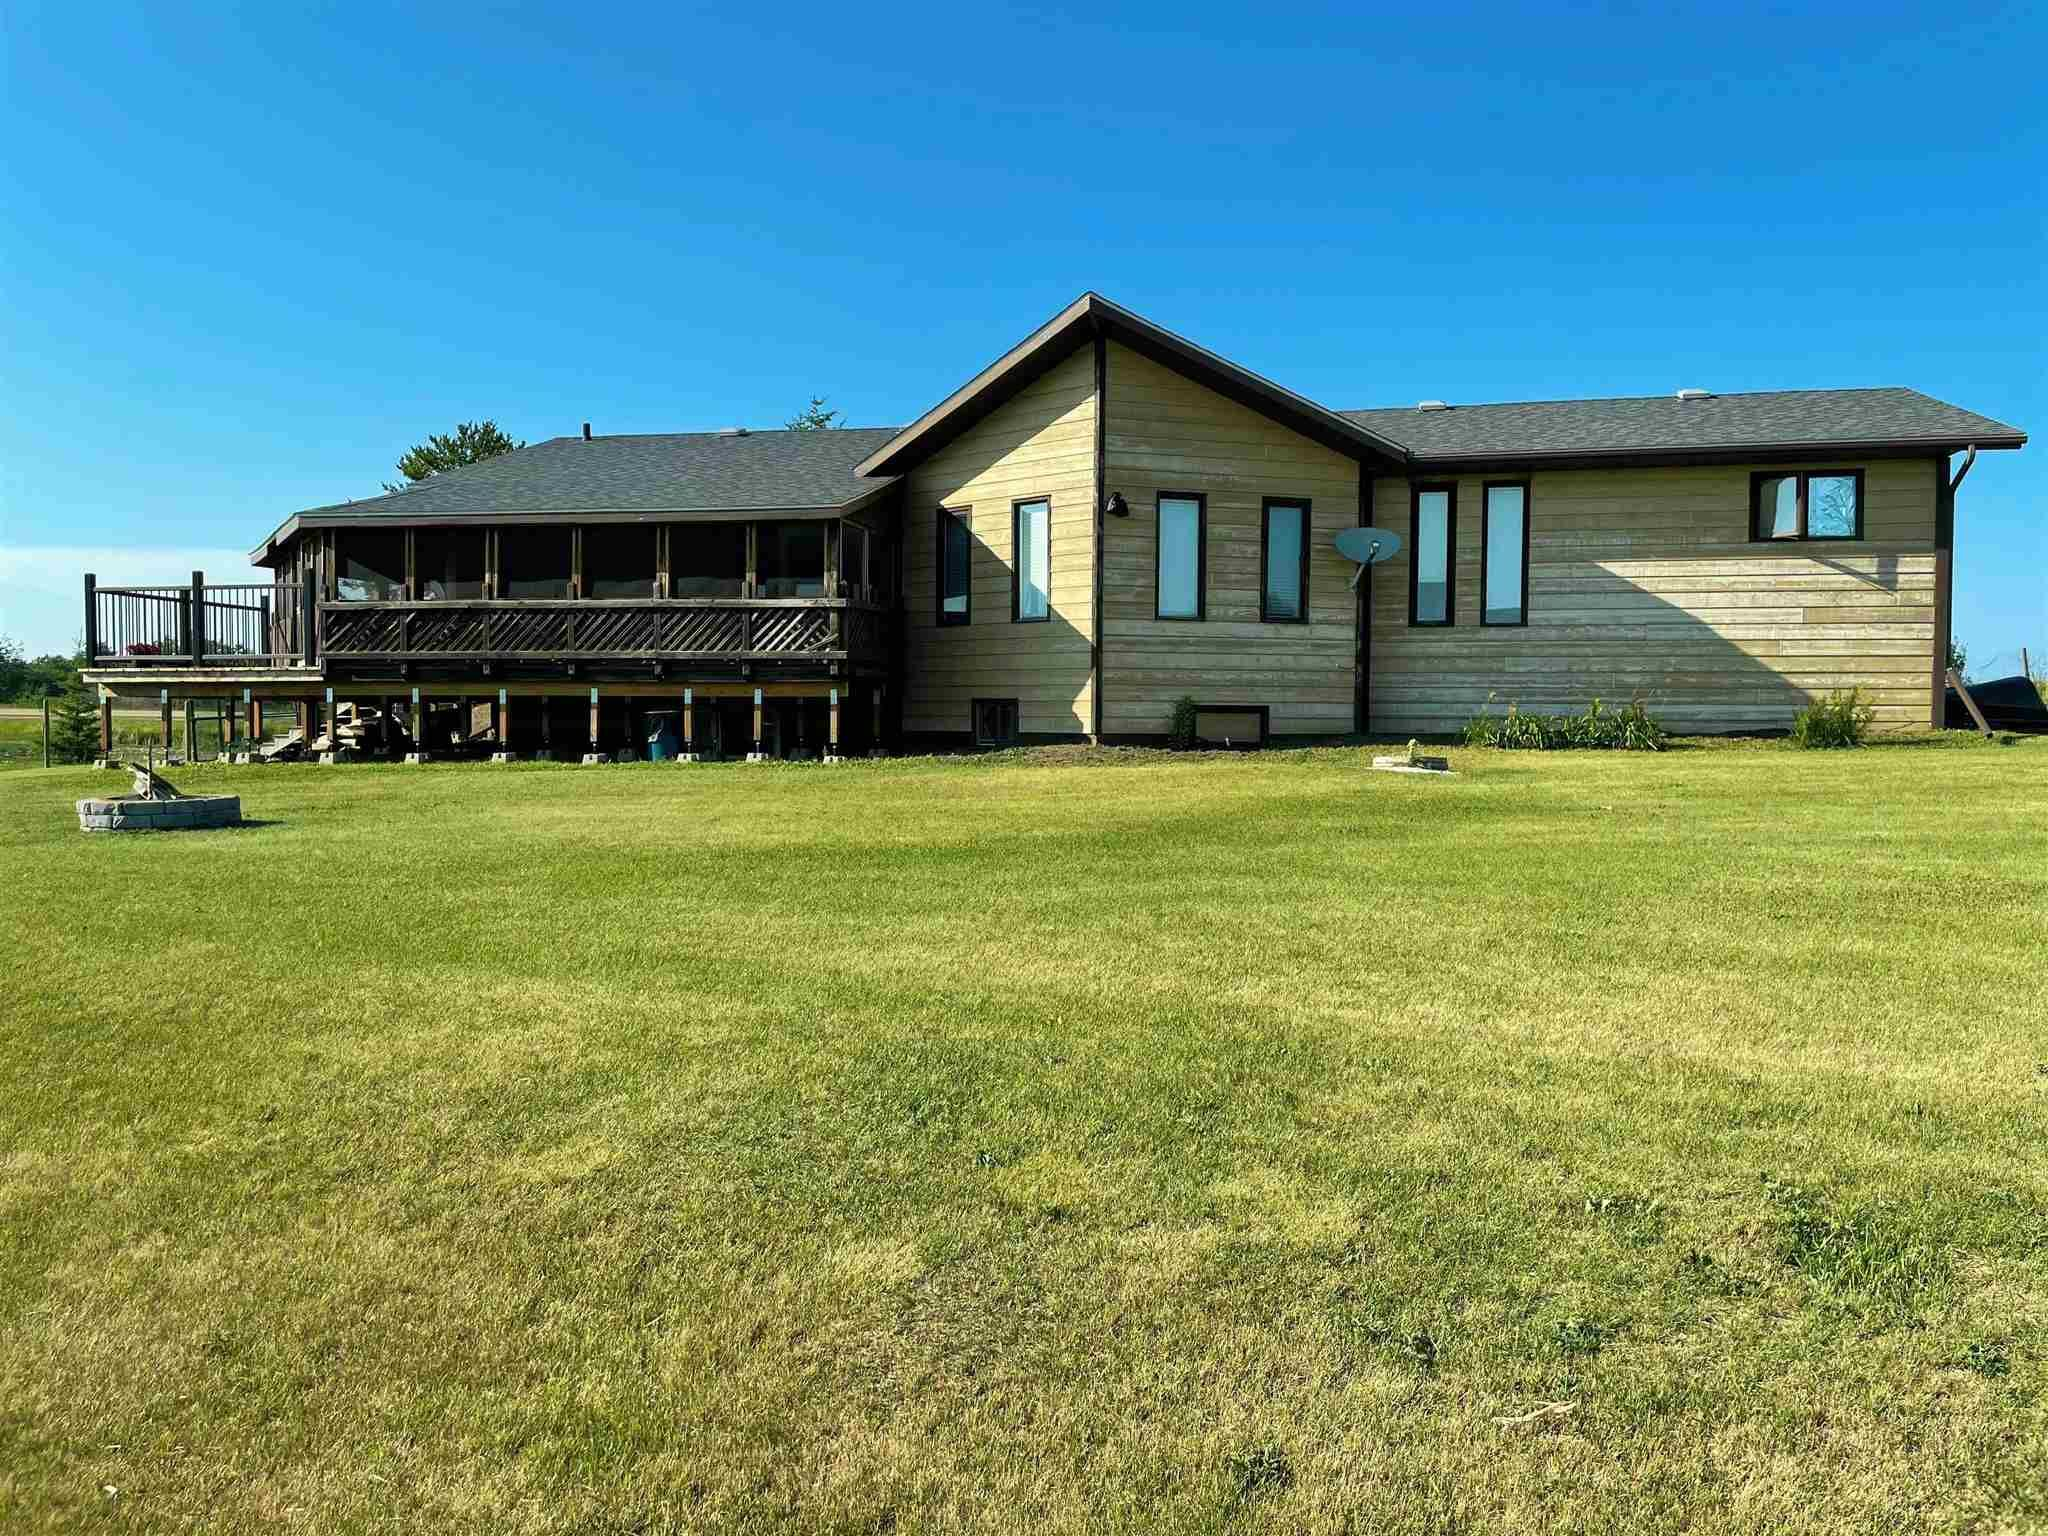 Main Photo: 13041 641 Highway: Rural Vermilion River County House for sale : MLS®# E4238979